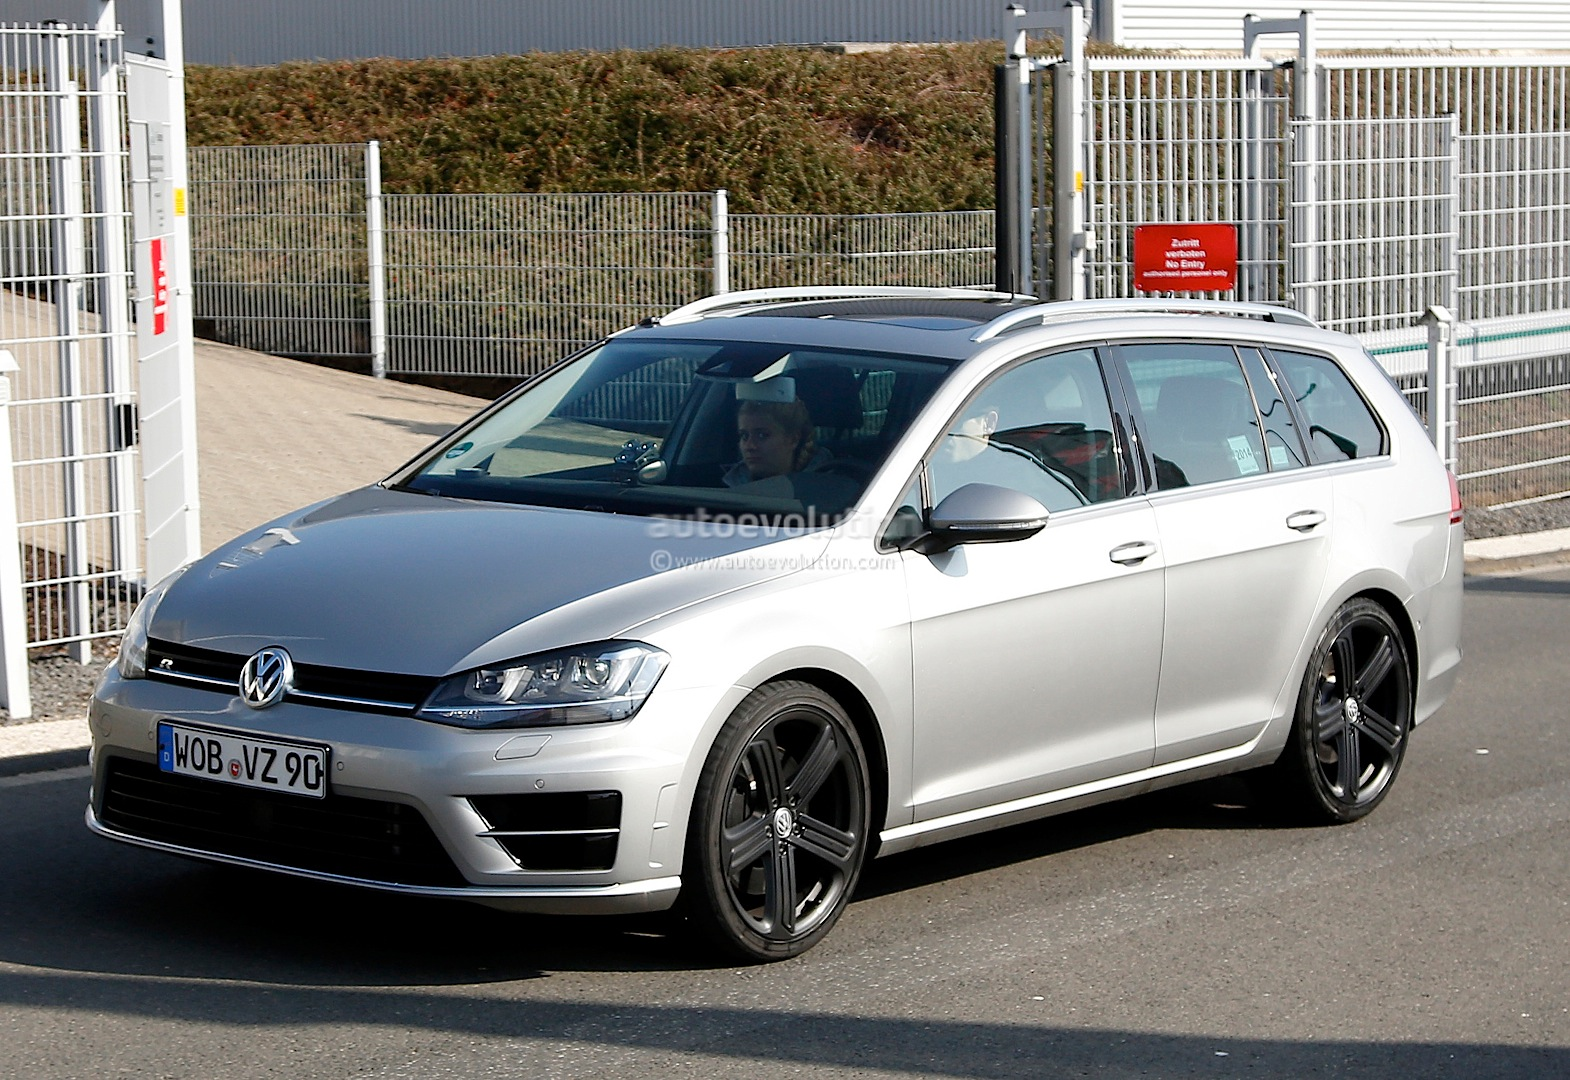 Spyshots: Volkswagen Golf R Estate - autoevolution